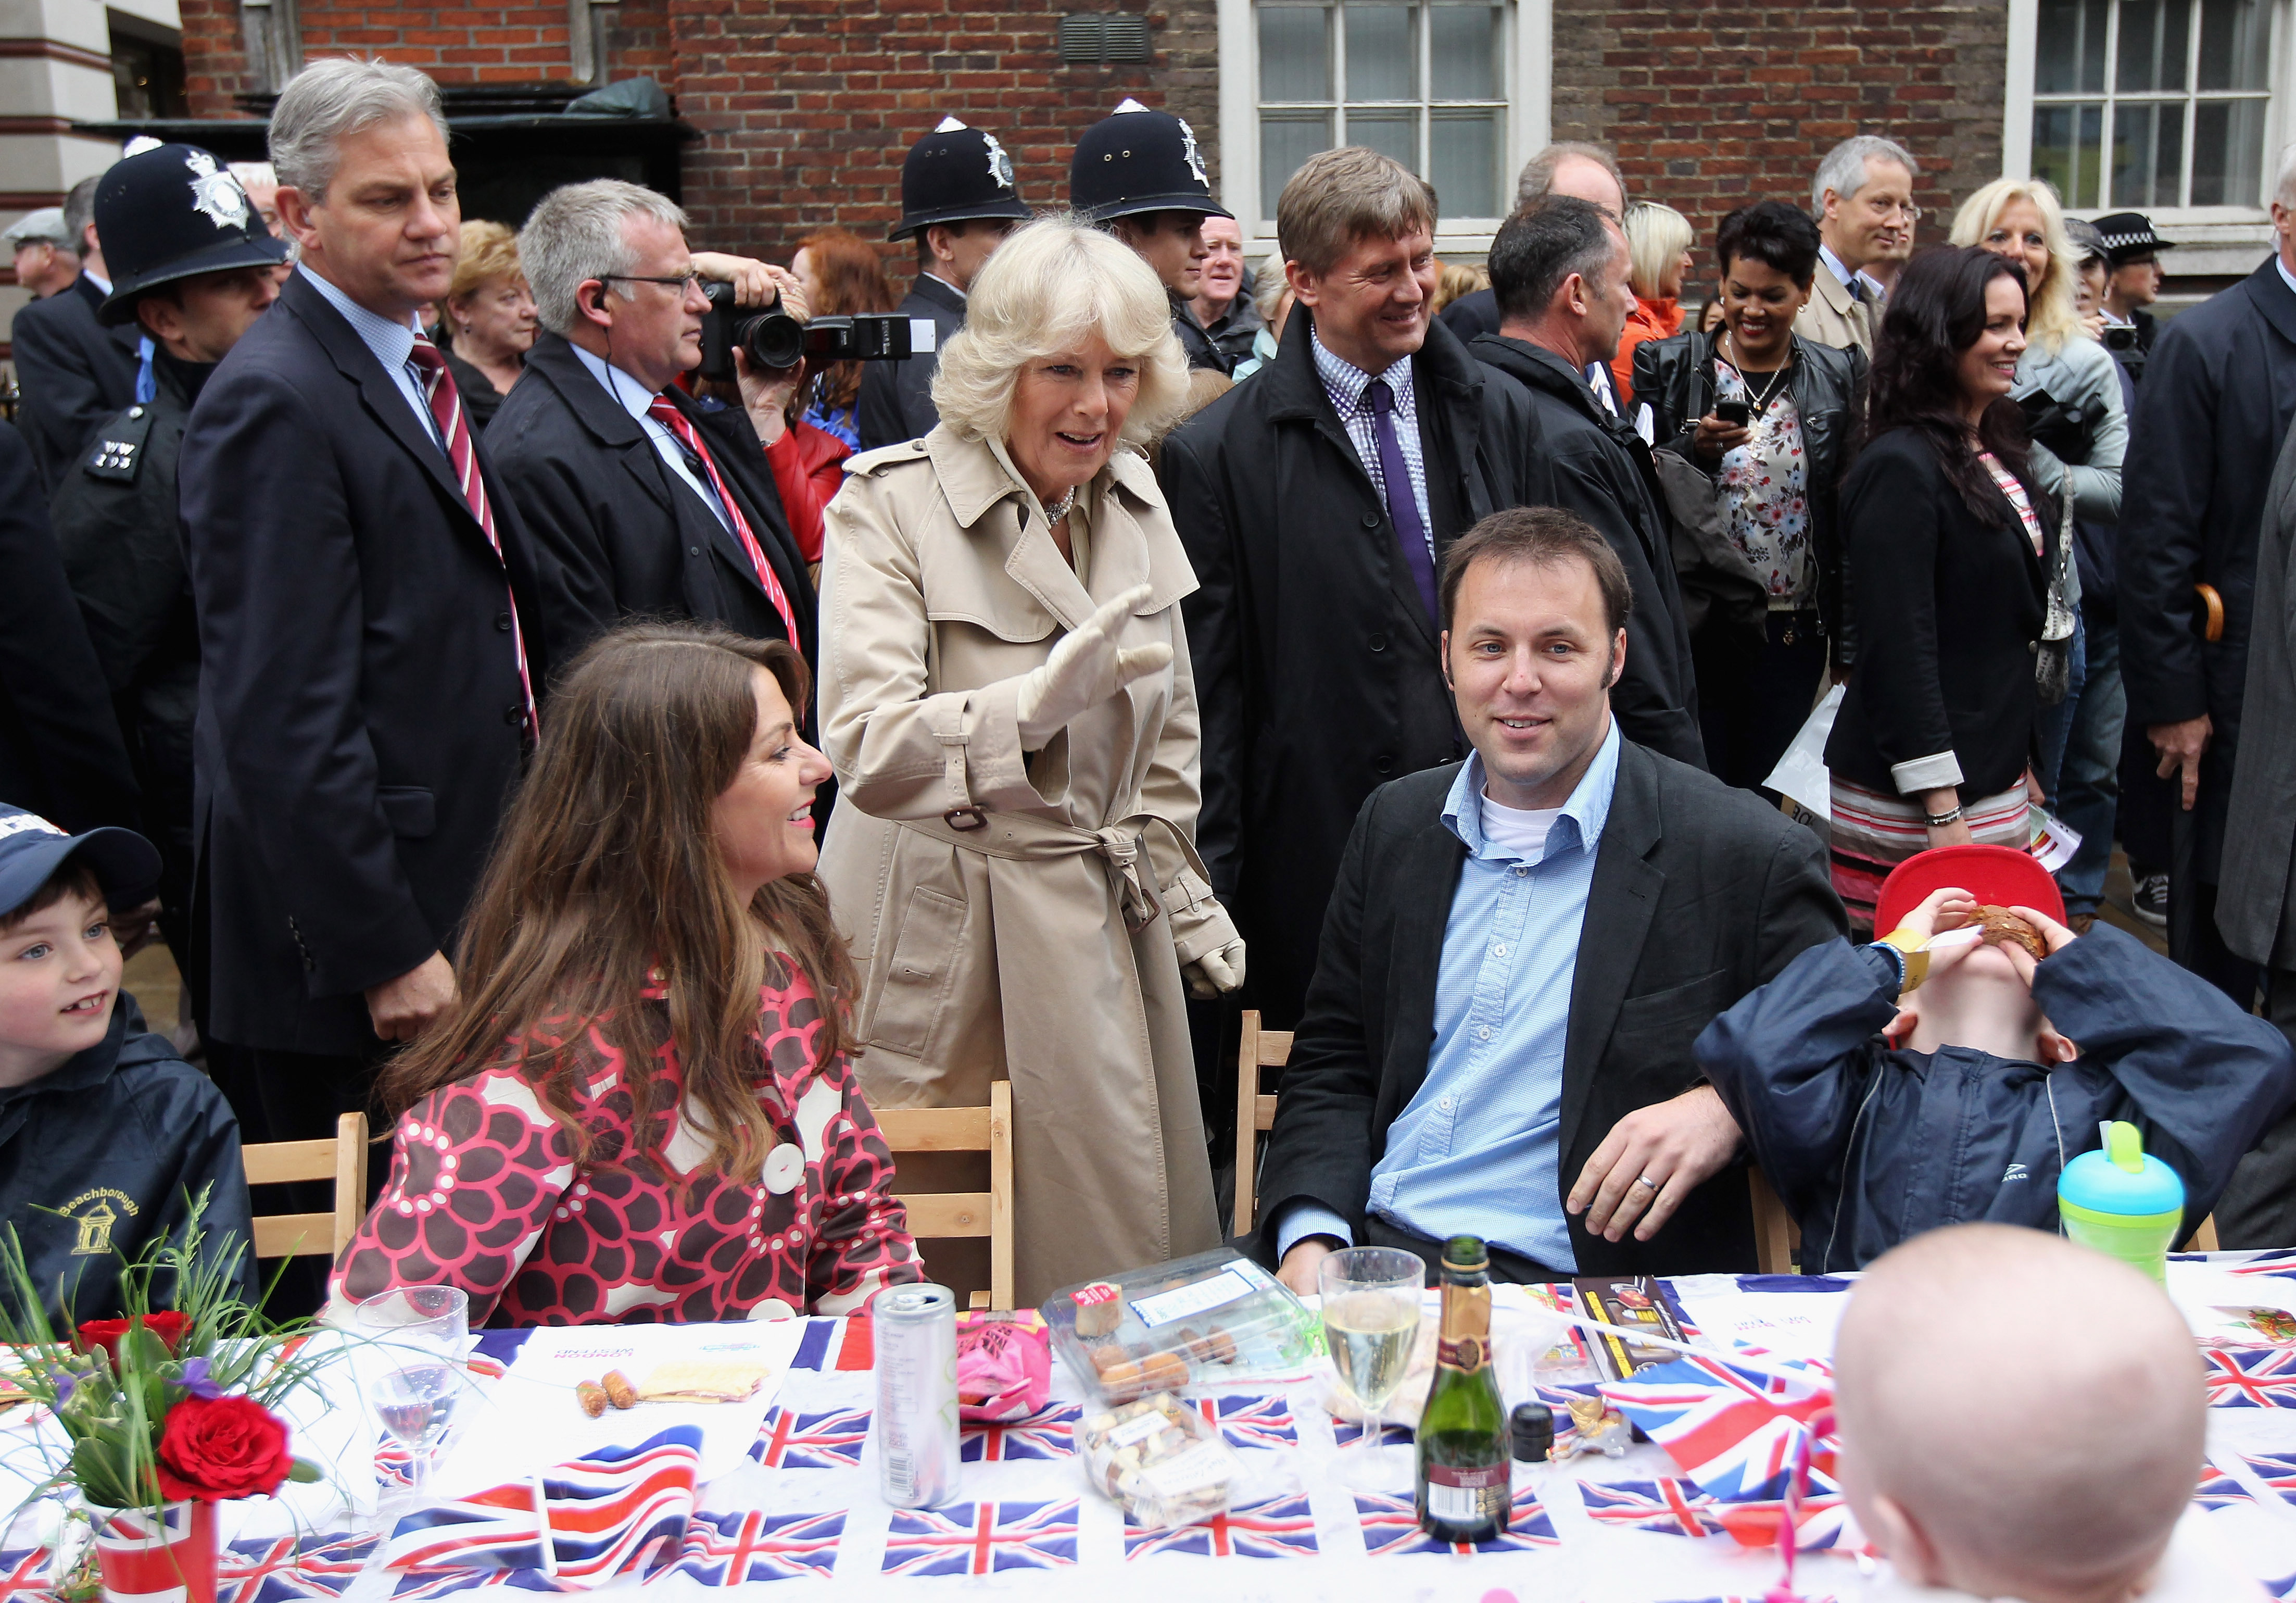 The Duchess of Cornwall at The Big Jubilee Lunch, 2012.